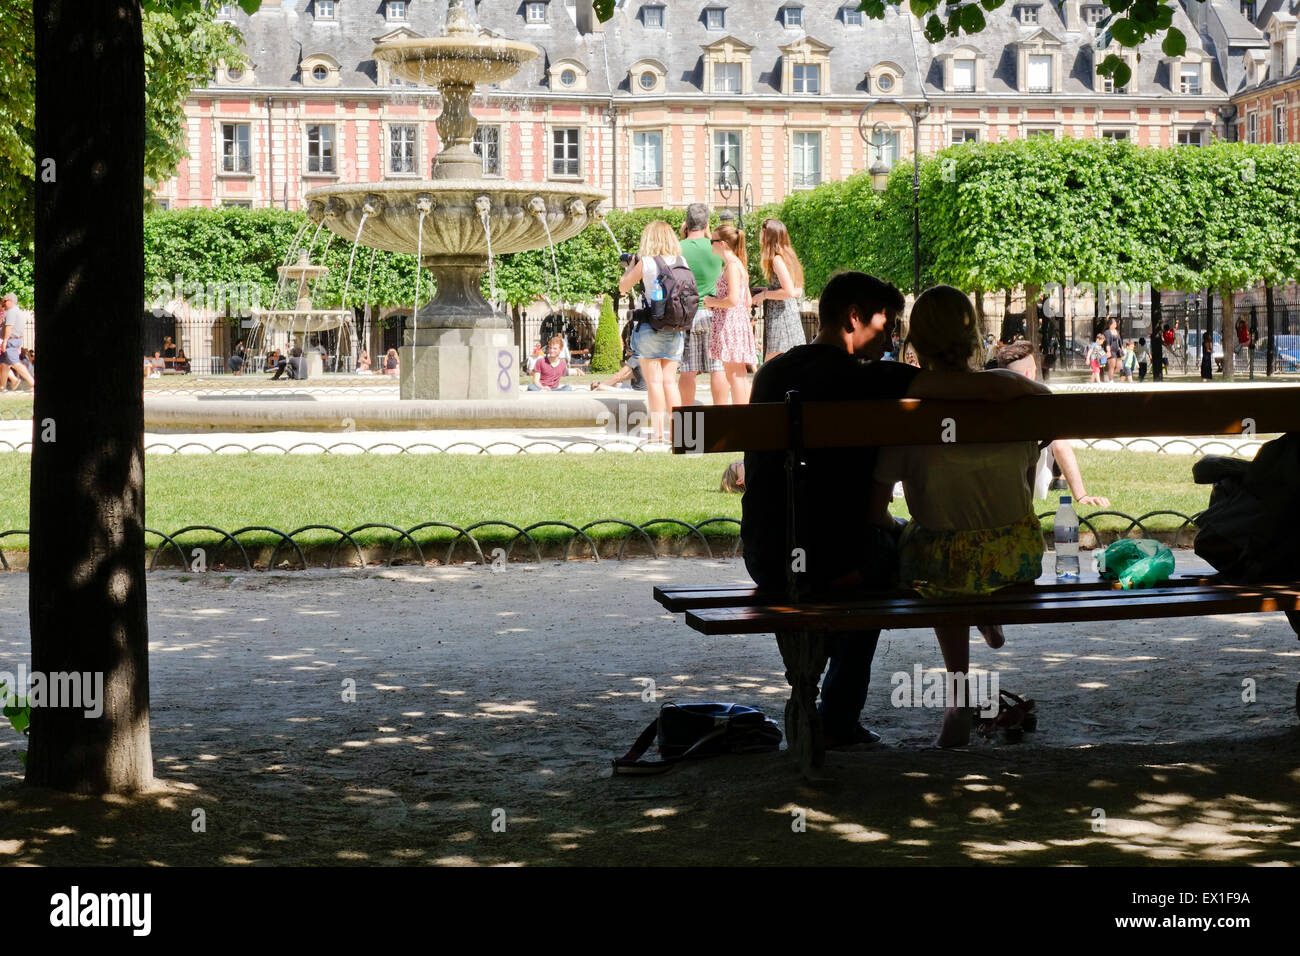 Tourists in summer heat wave near fountain at oldest square, Place de vosges, Paris, France. - Stock Image